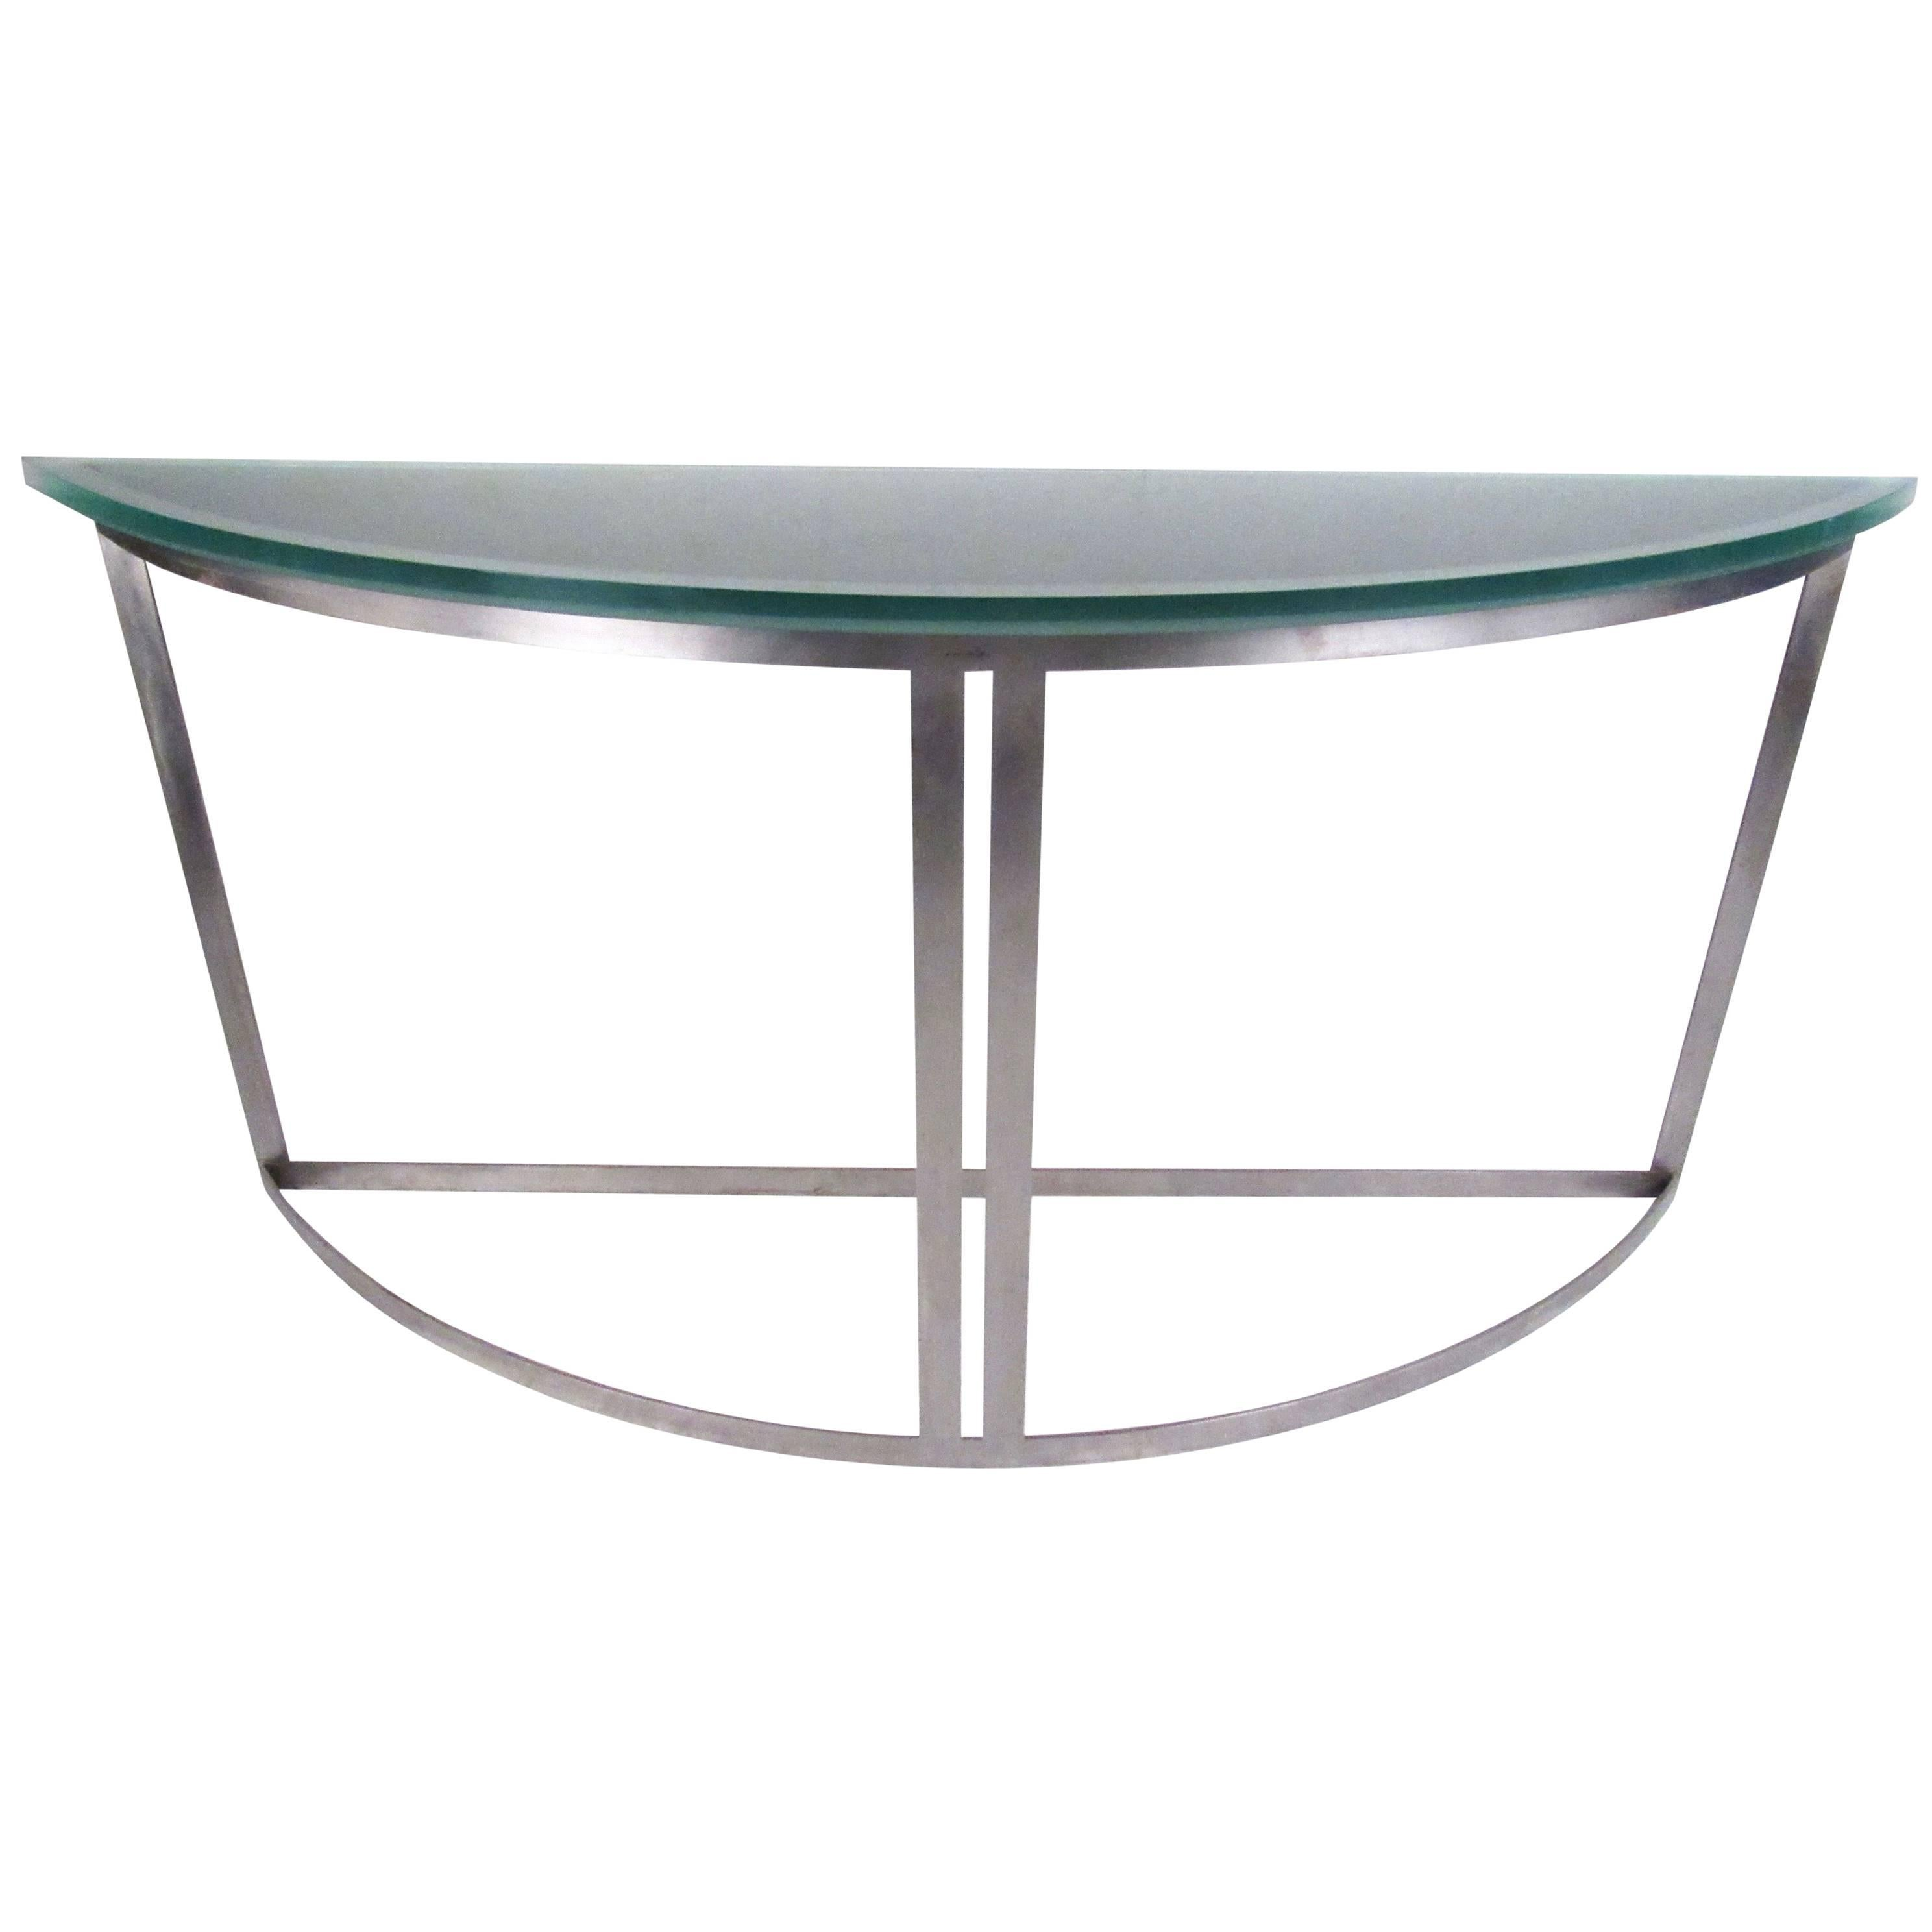 Industrial Modern Demilune Console Table with Sandblasted Glass Top